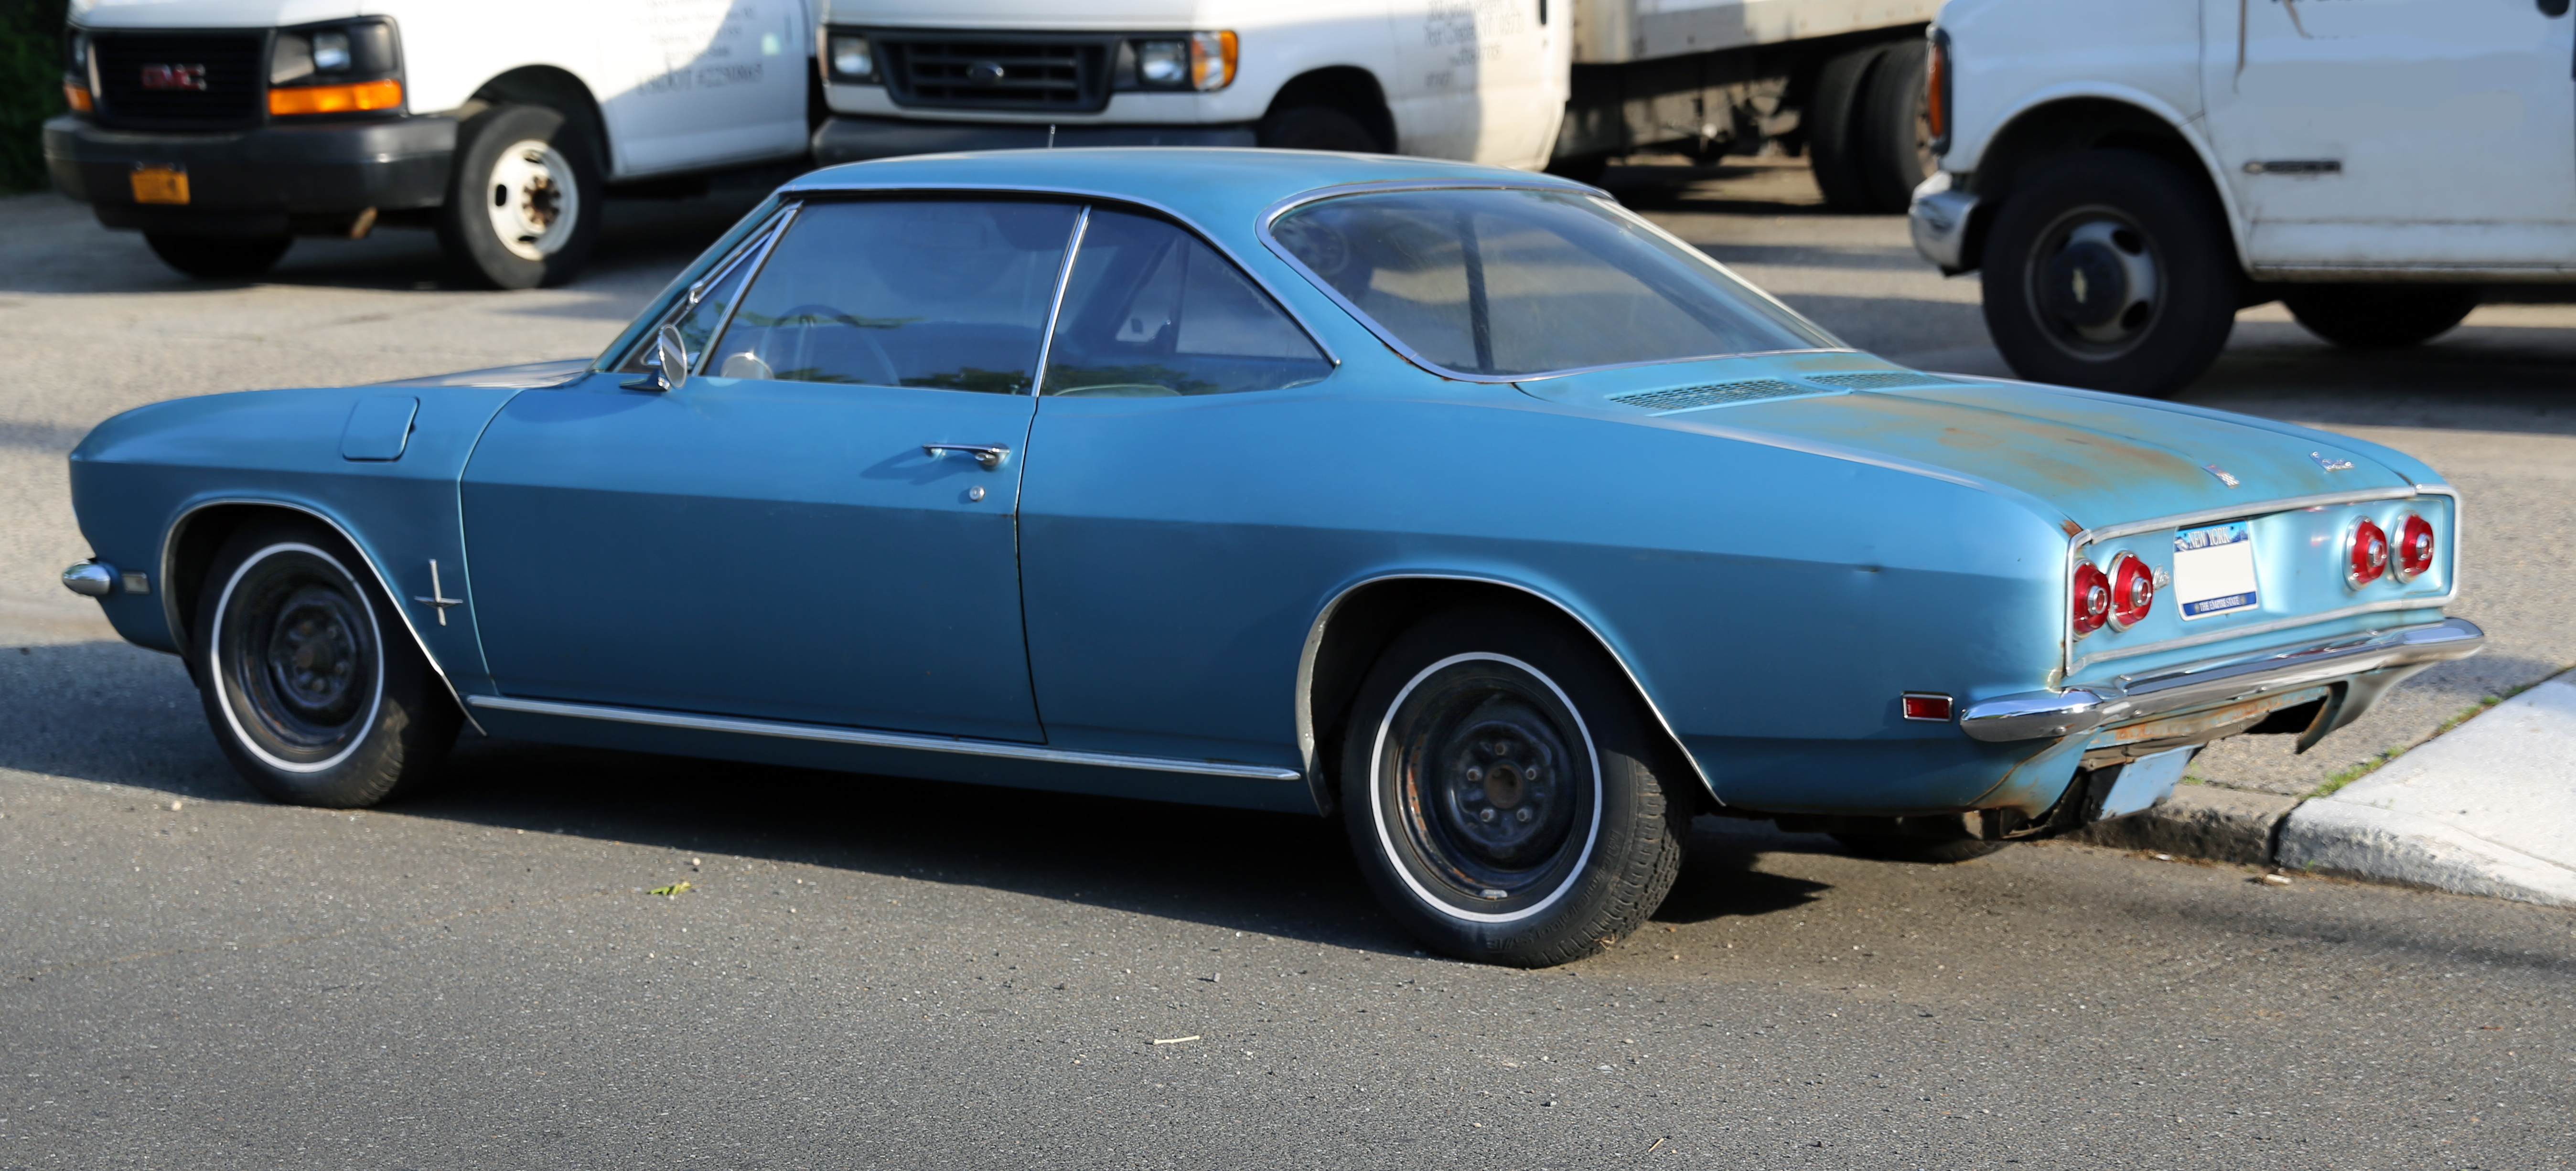 File:1968 Chevrolet Corvair 110 coupé rear.jpg - Wikimedia Commons